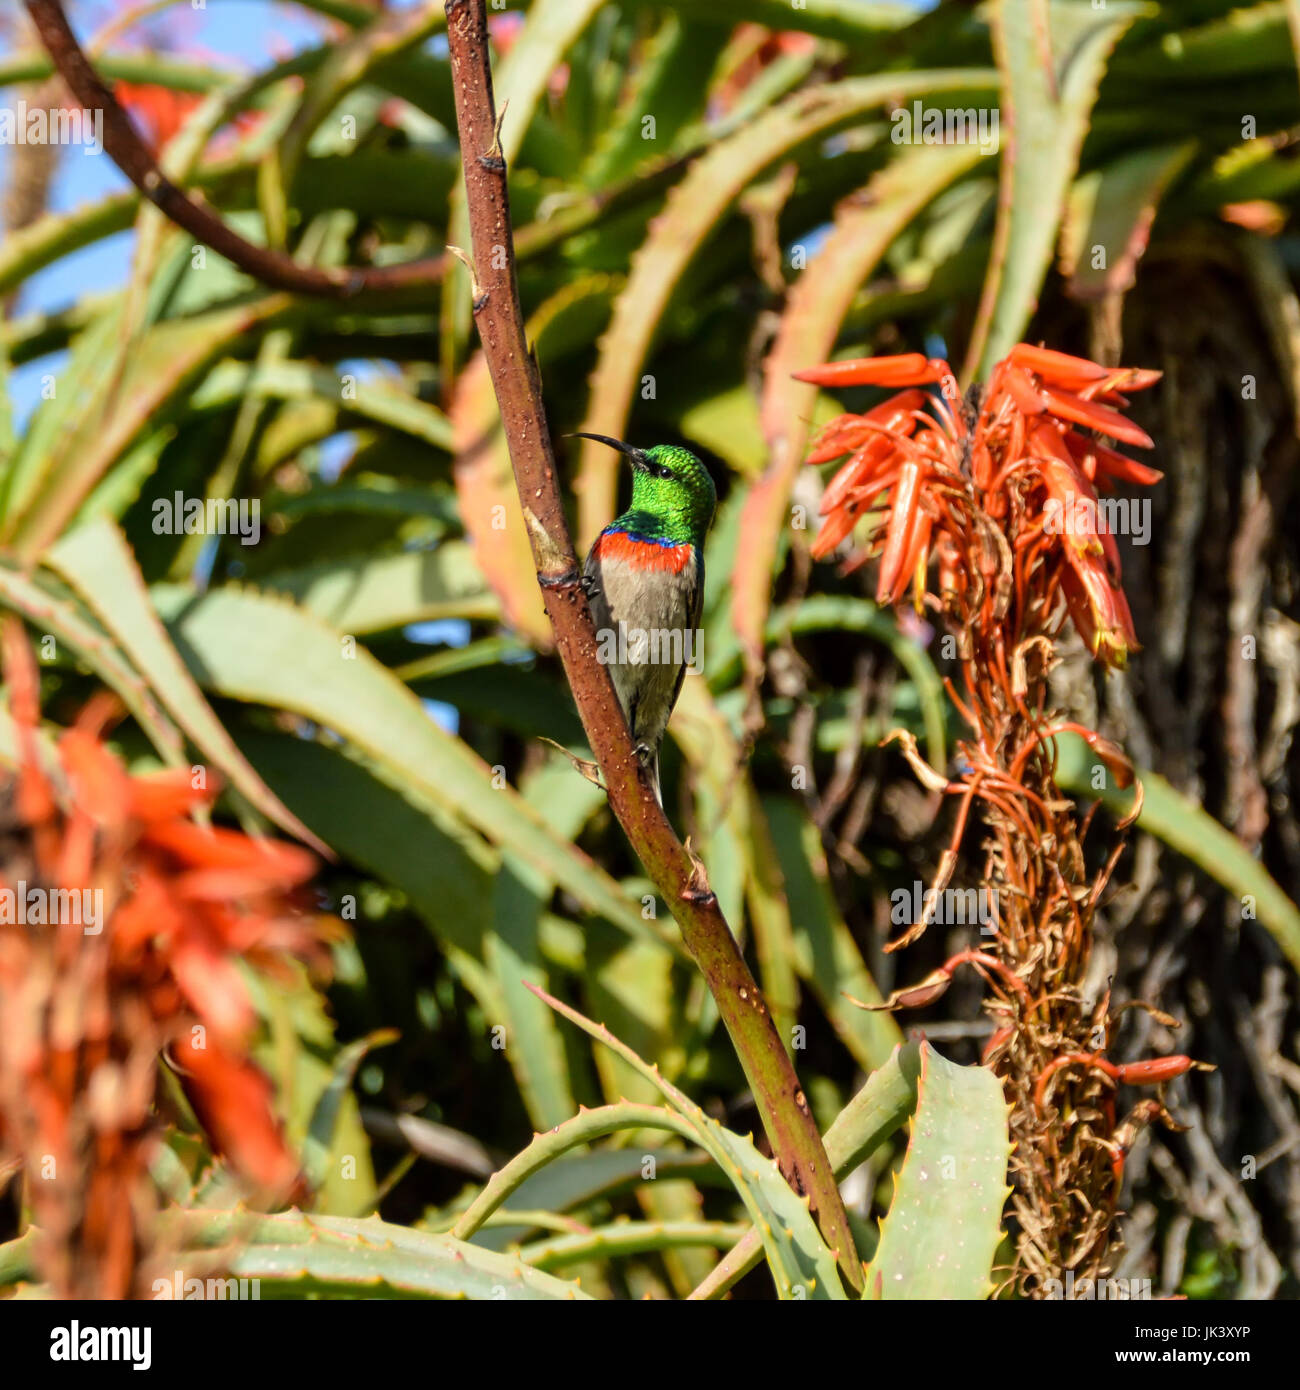 A male Double-collared Sunbird perched on an aloe plant in Southern Africa - Stock Image